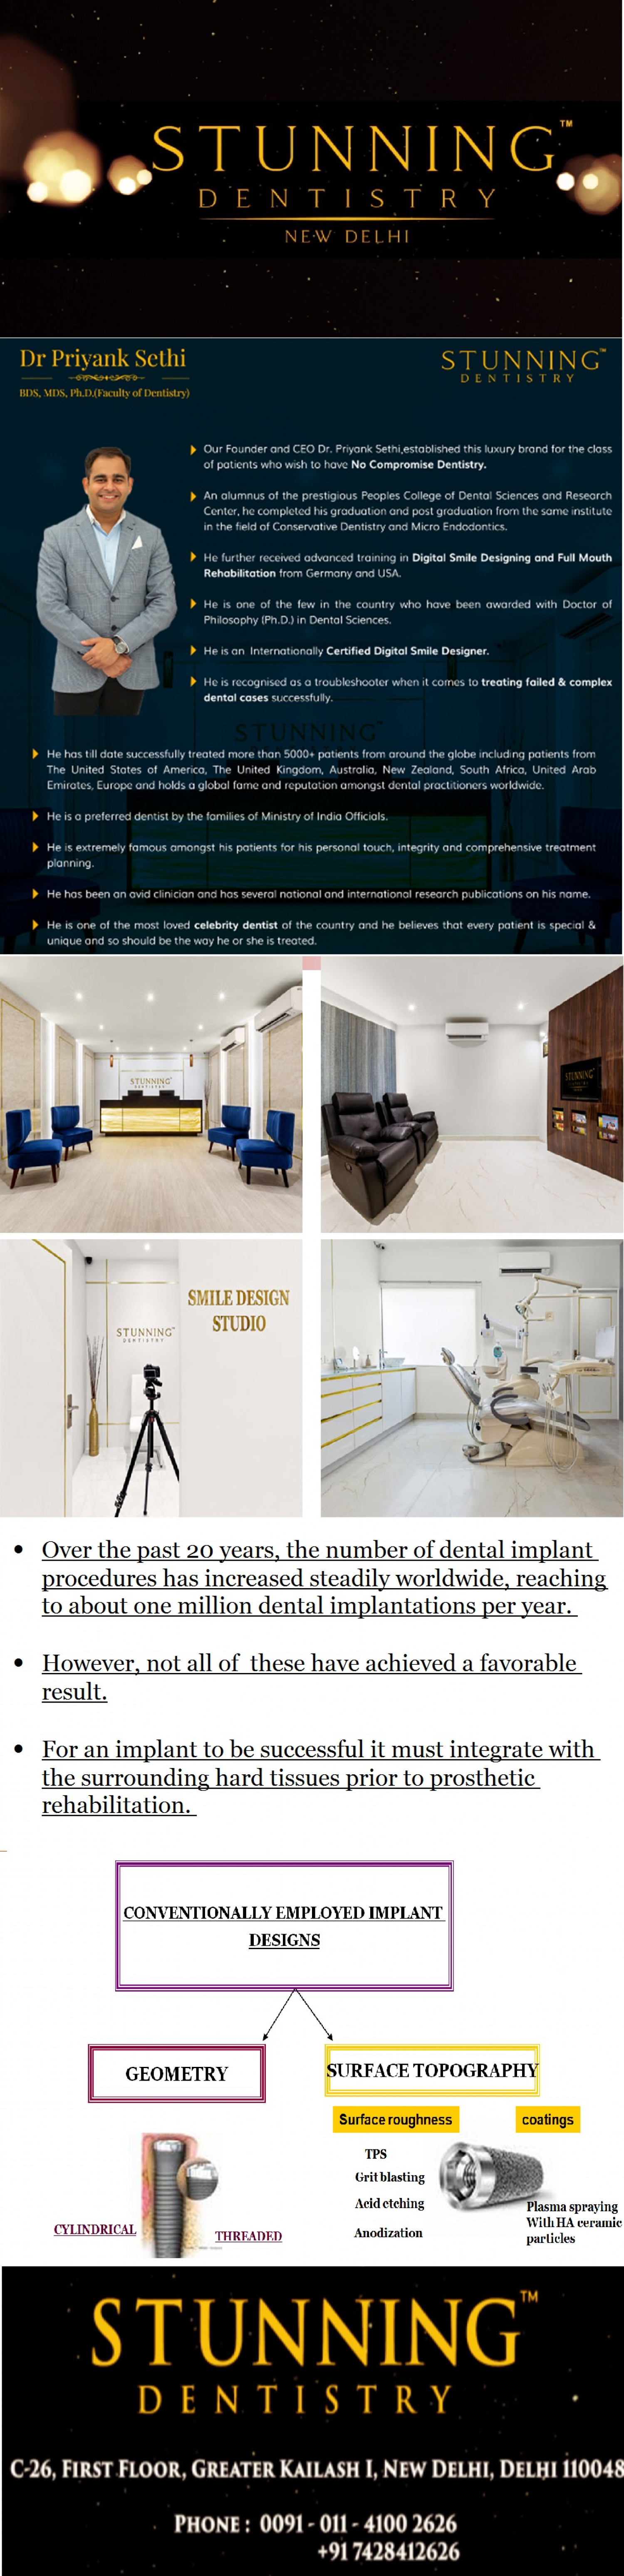 Dental Implants in India Infographic